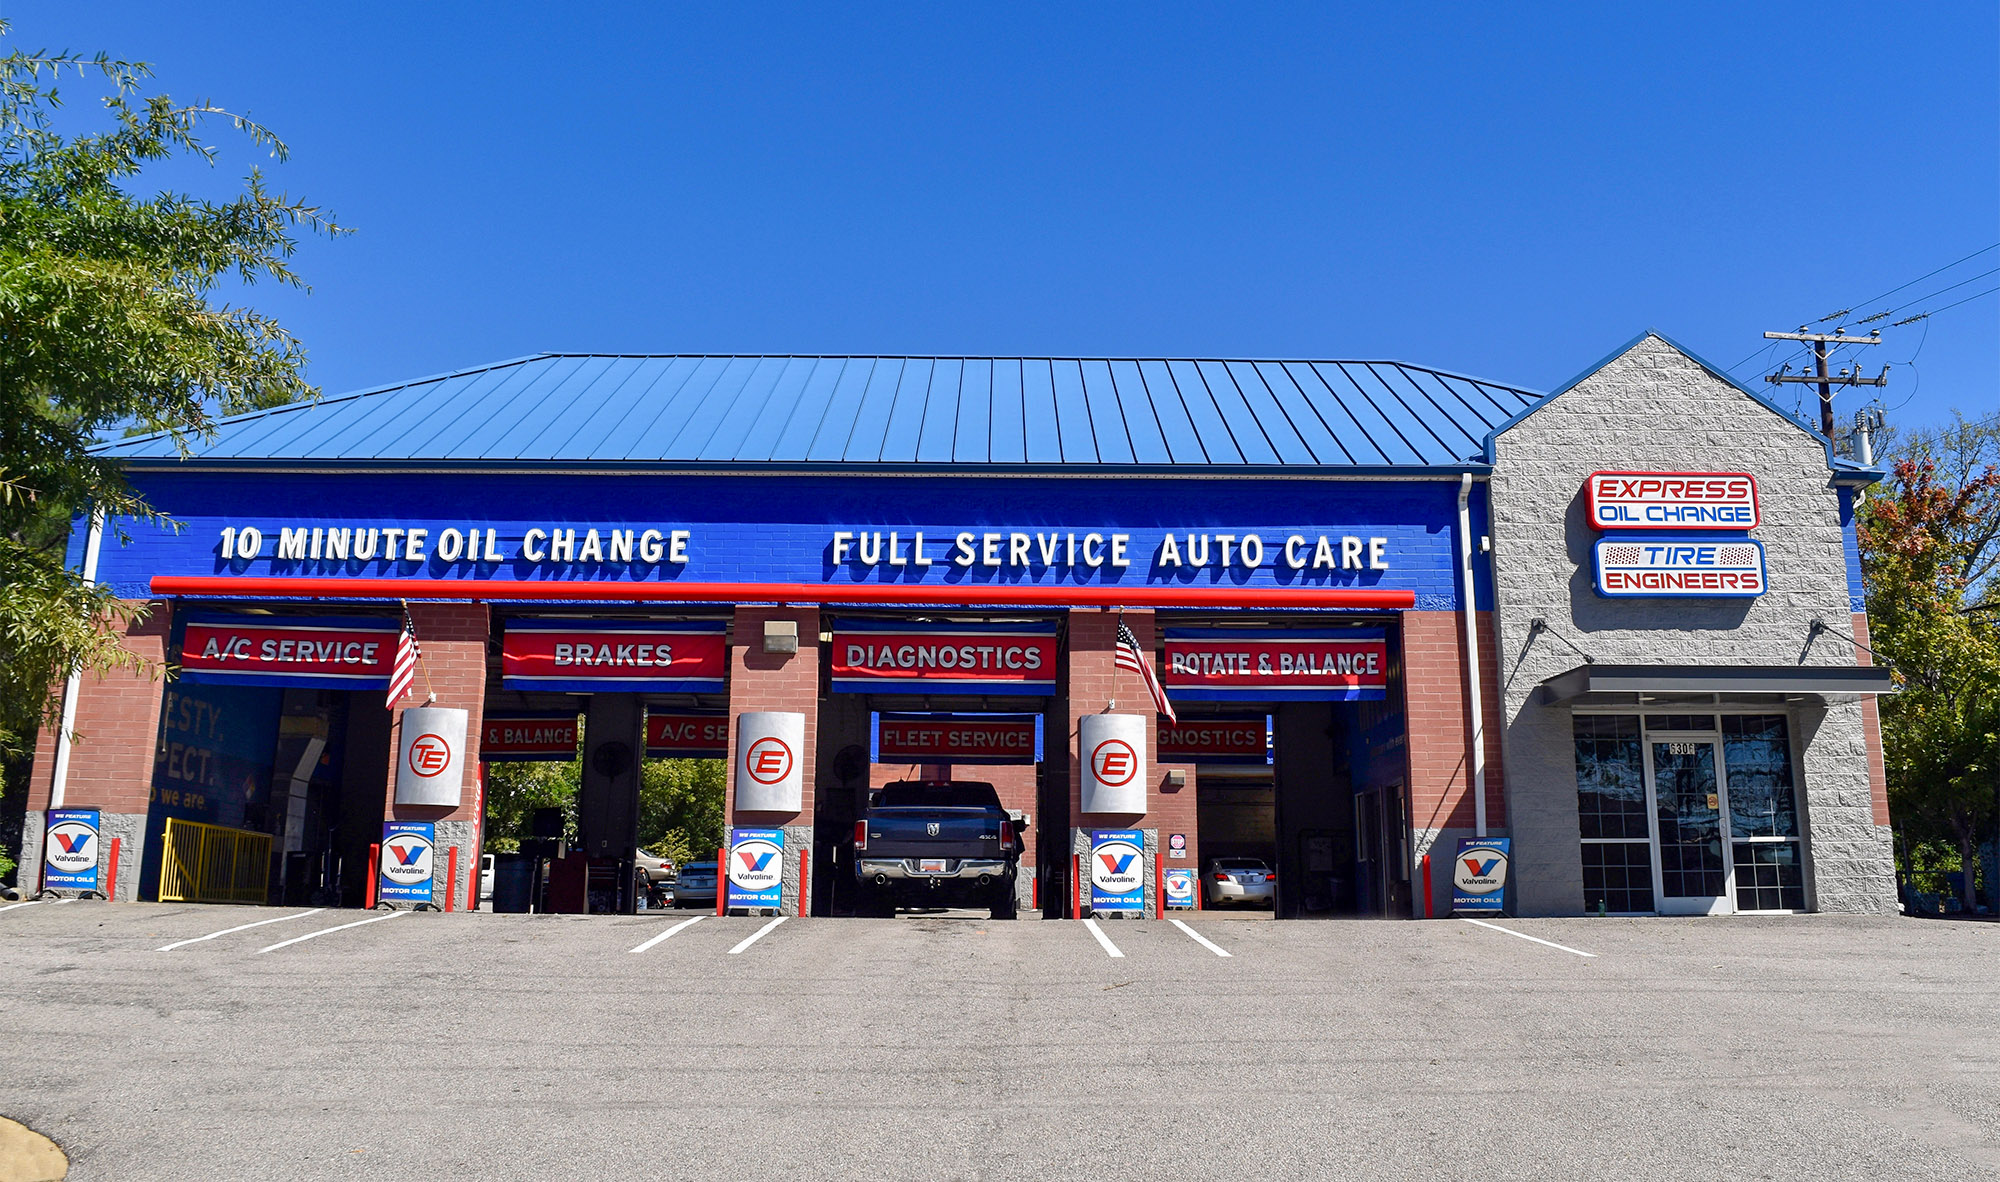 express oil change Columbia, SC - Garners Ferry Road store photo